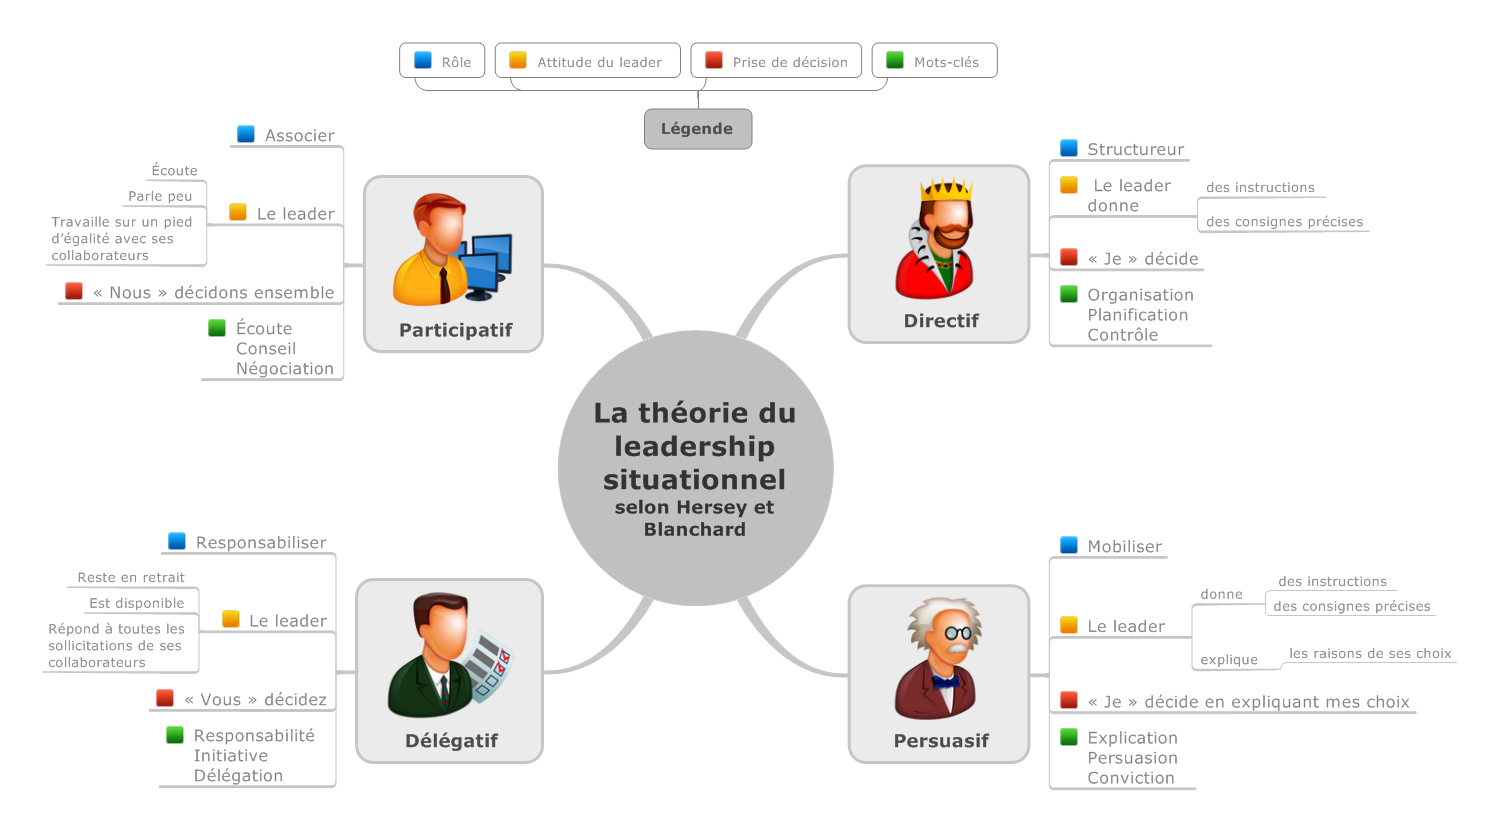 #InfoMapping – La théorie du leadership situationnel selon Hersey & Blanchard